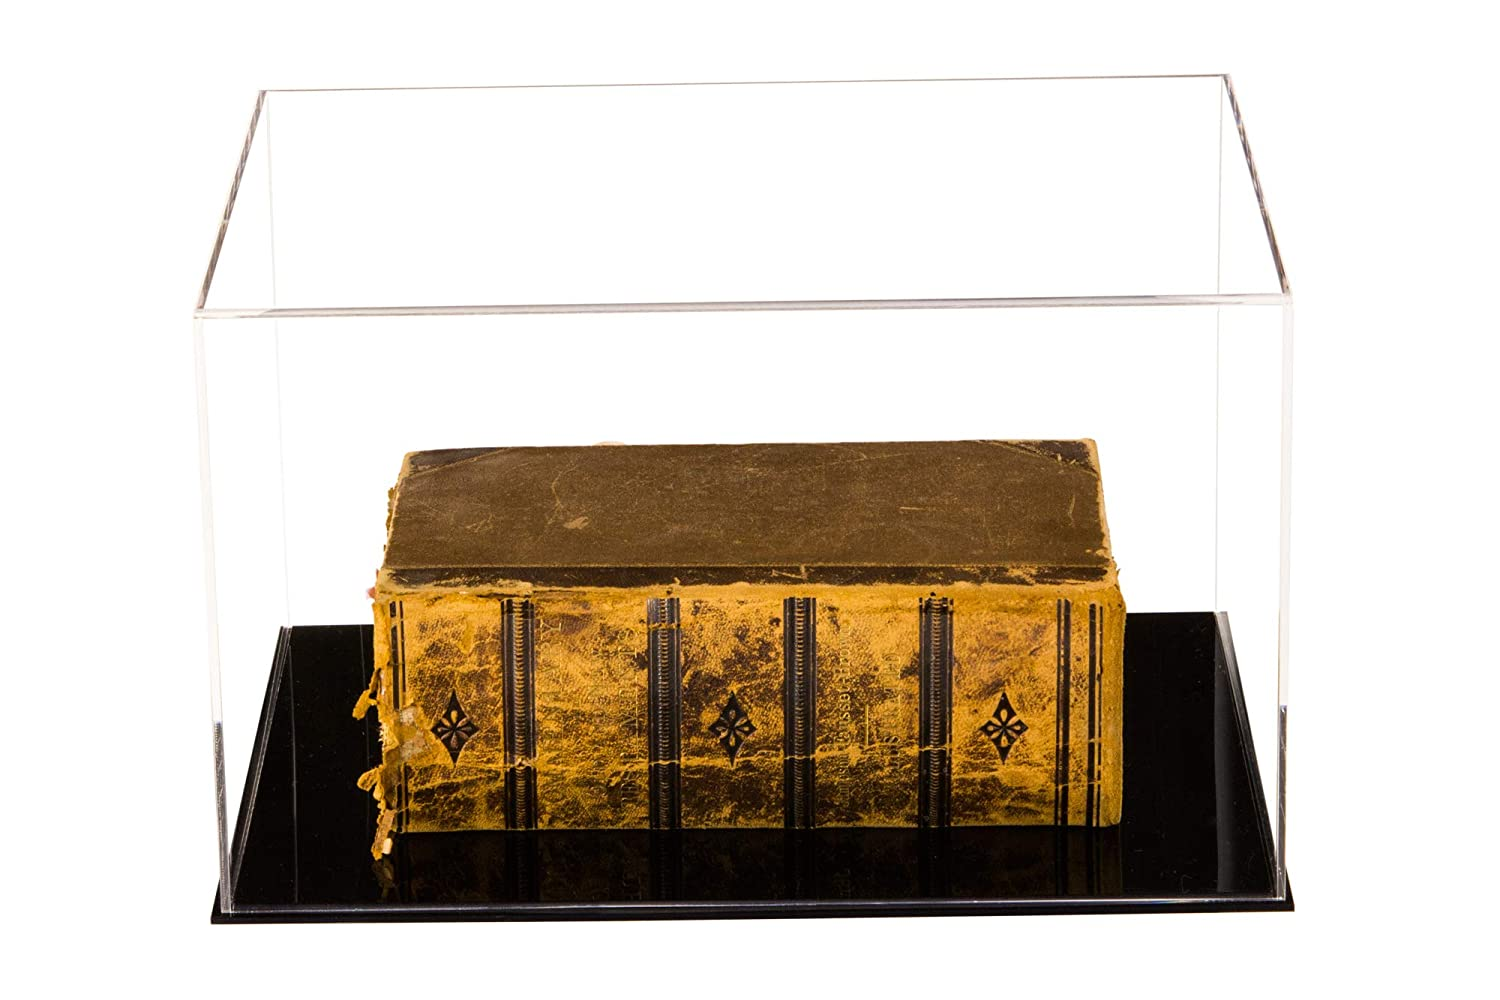 A084 Deluxe Clear Acrylic Table Top Display Case for Collectable Book